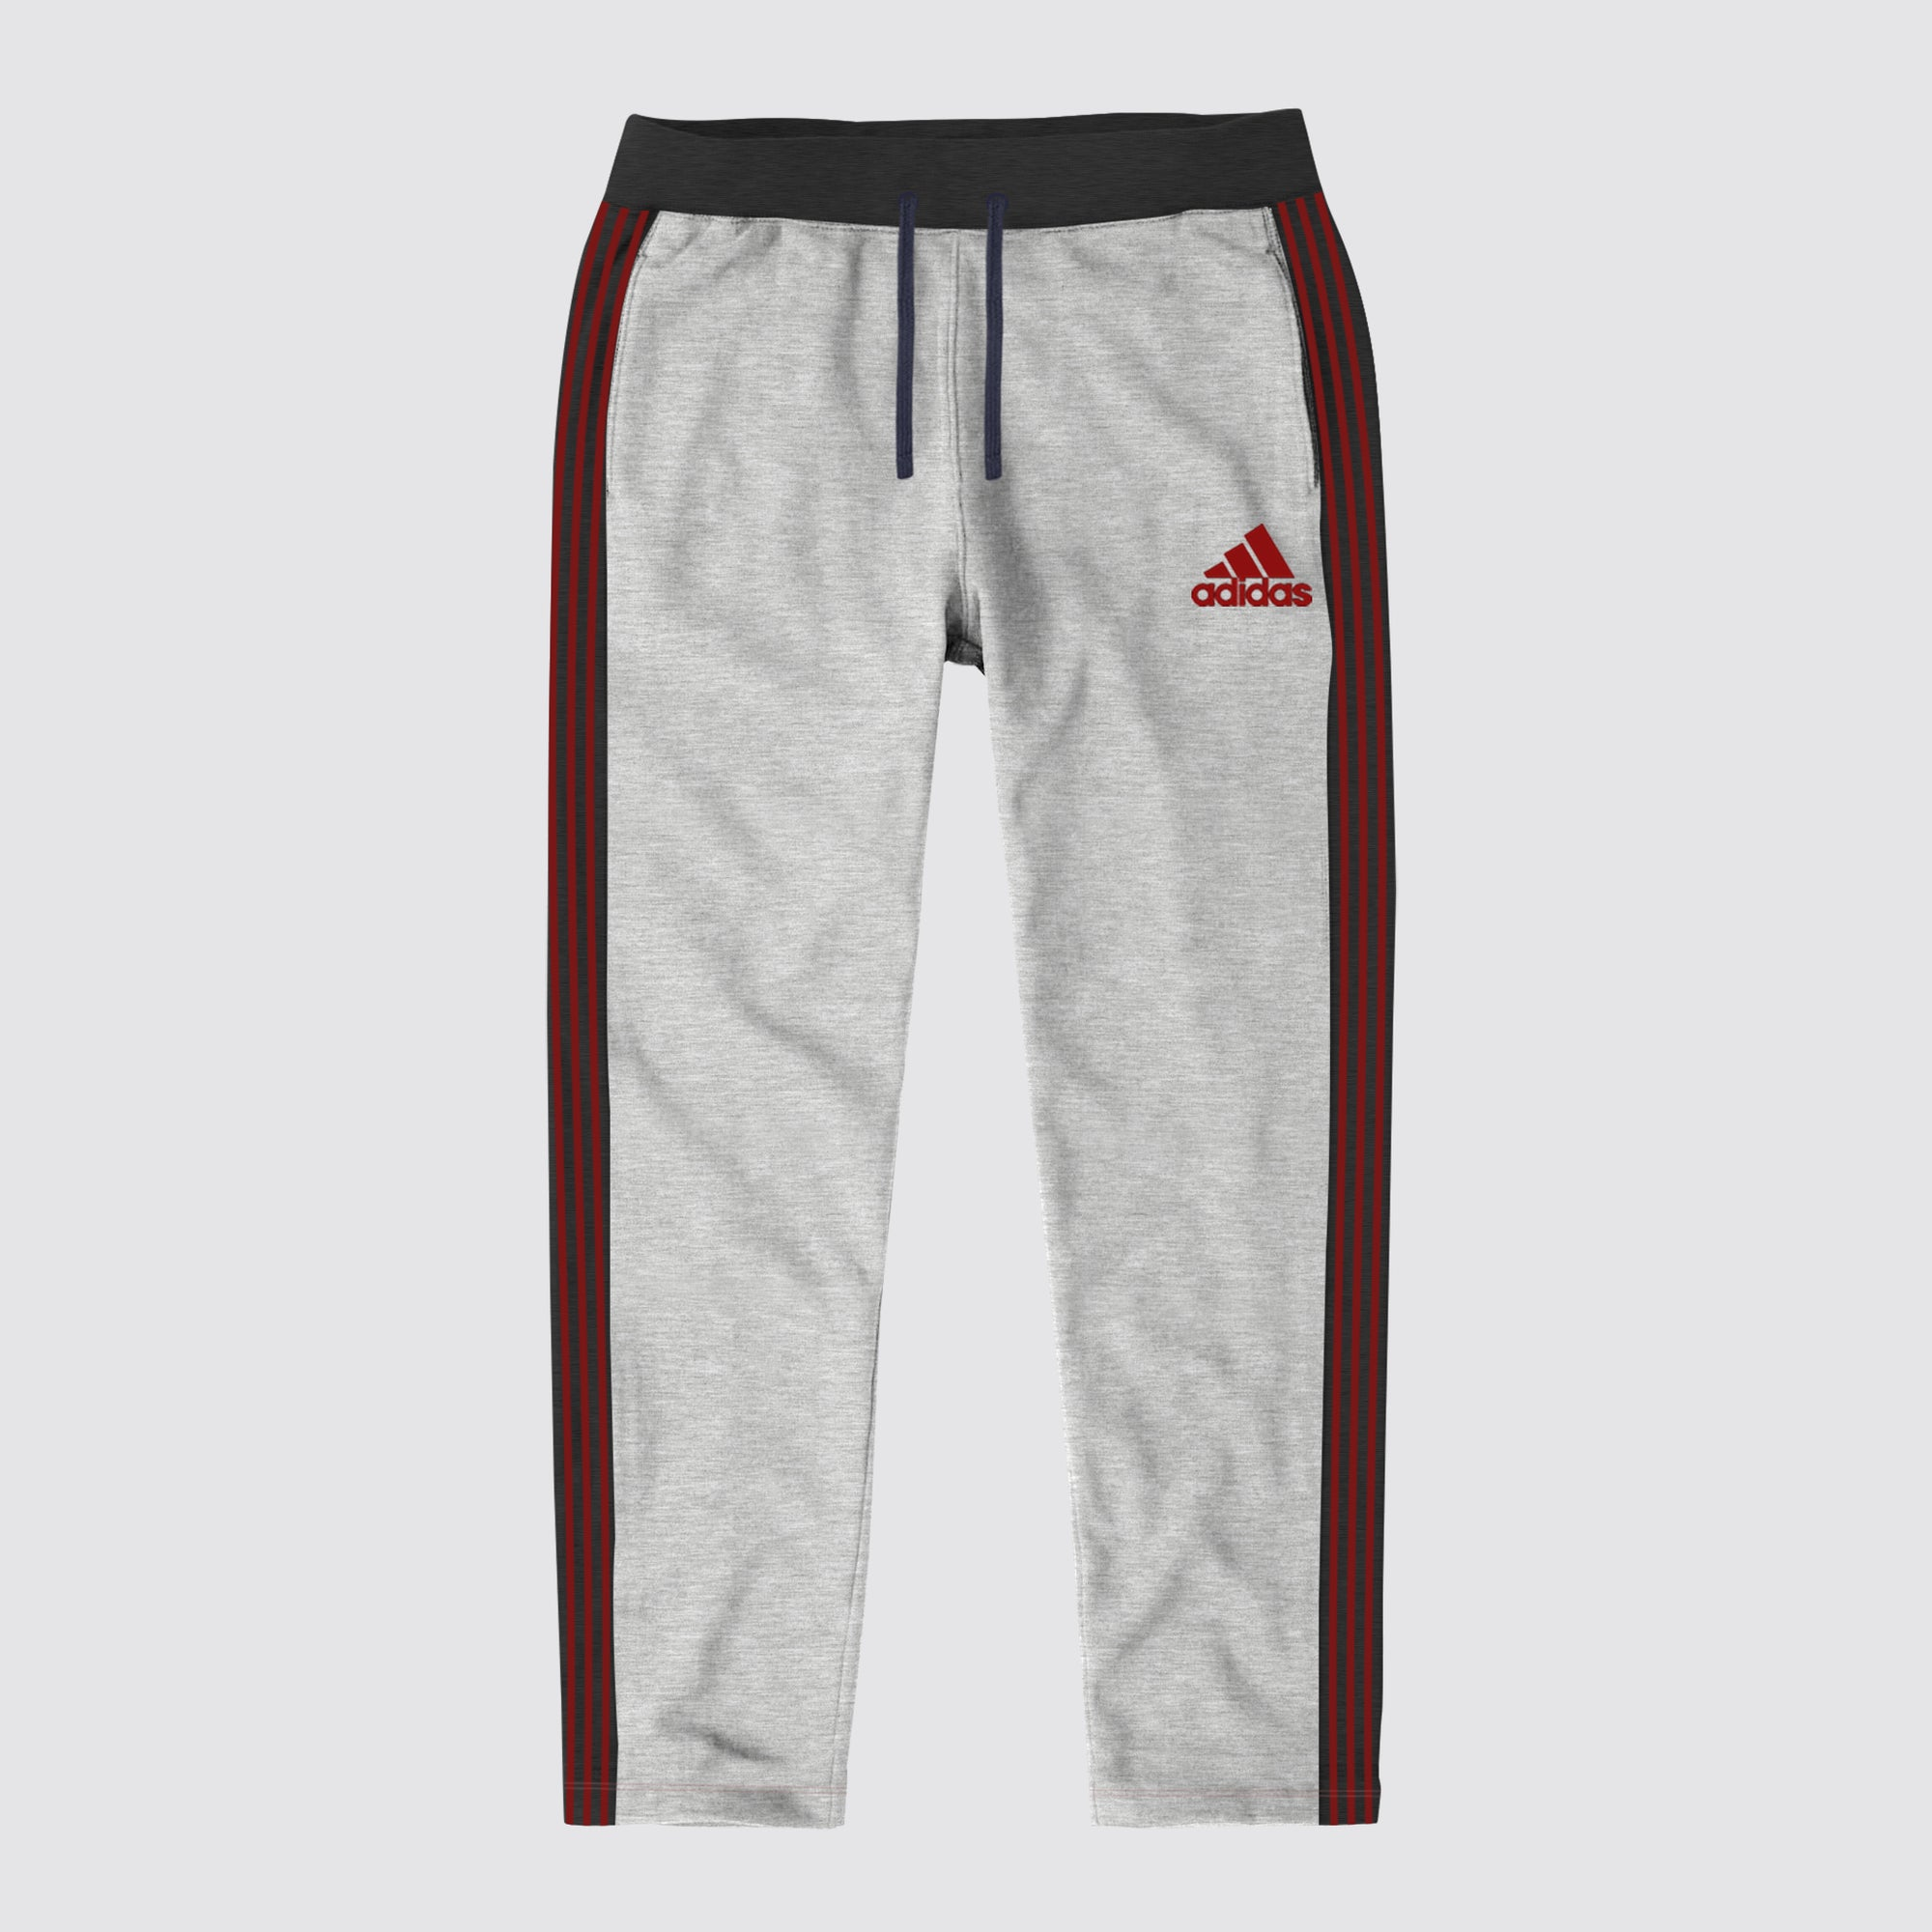 Adidas Single Jersey Regular Fit Trouser For Men-BE8684